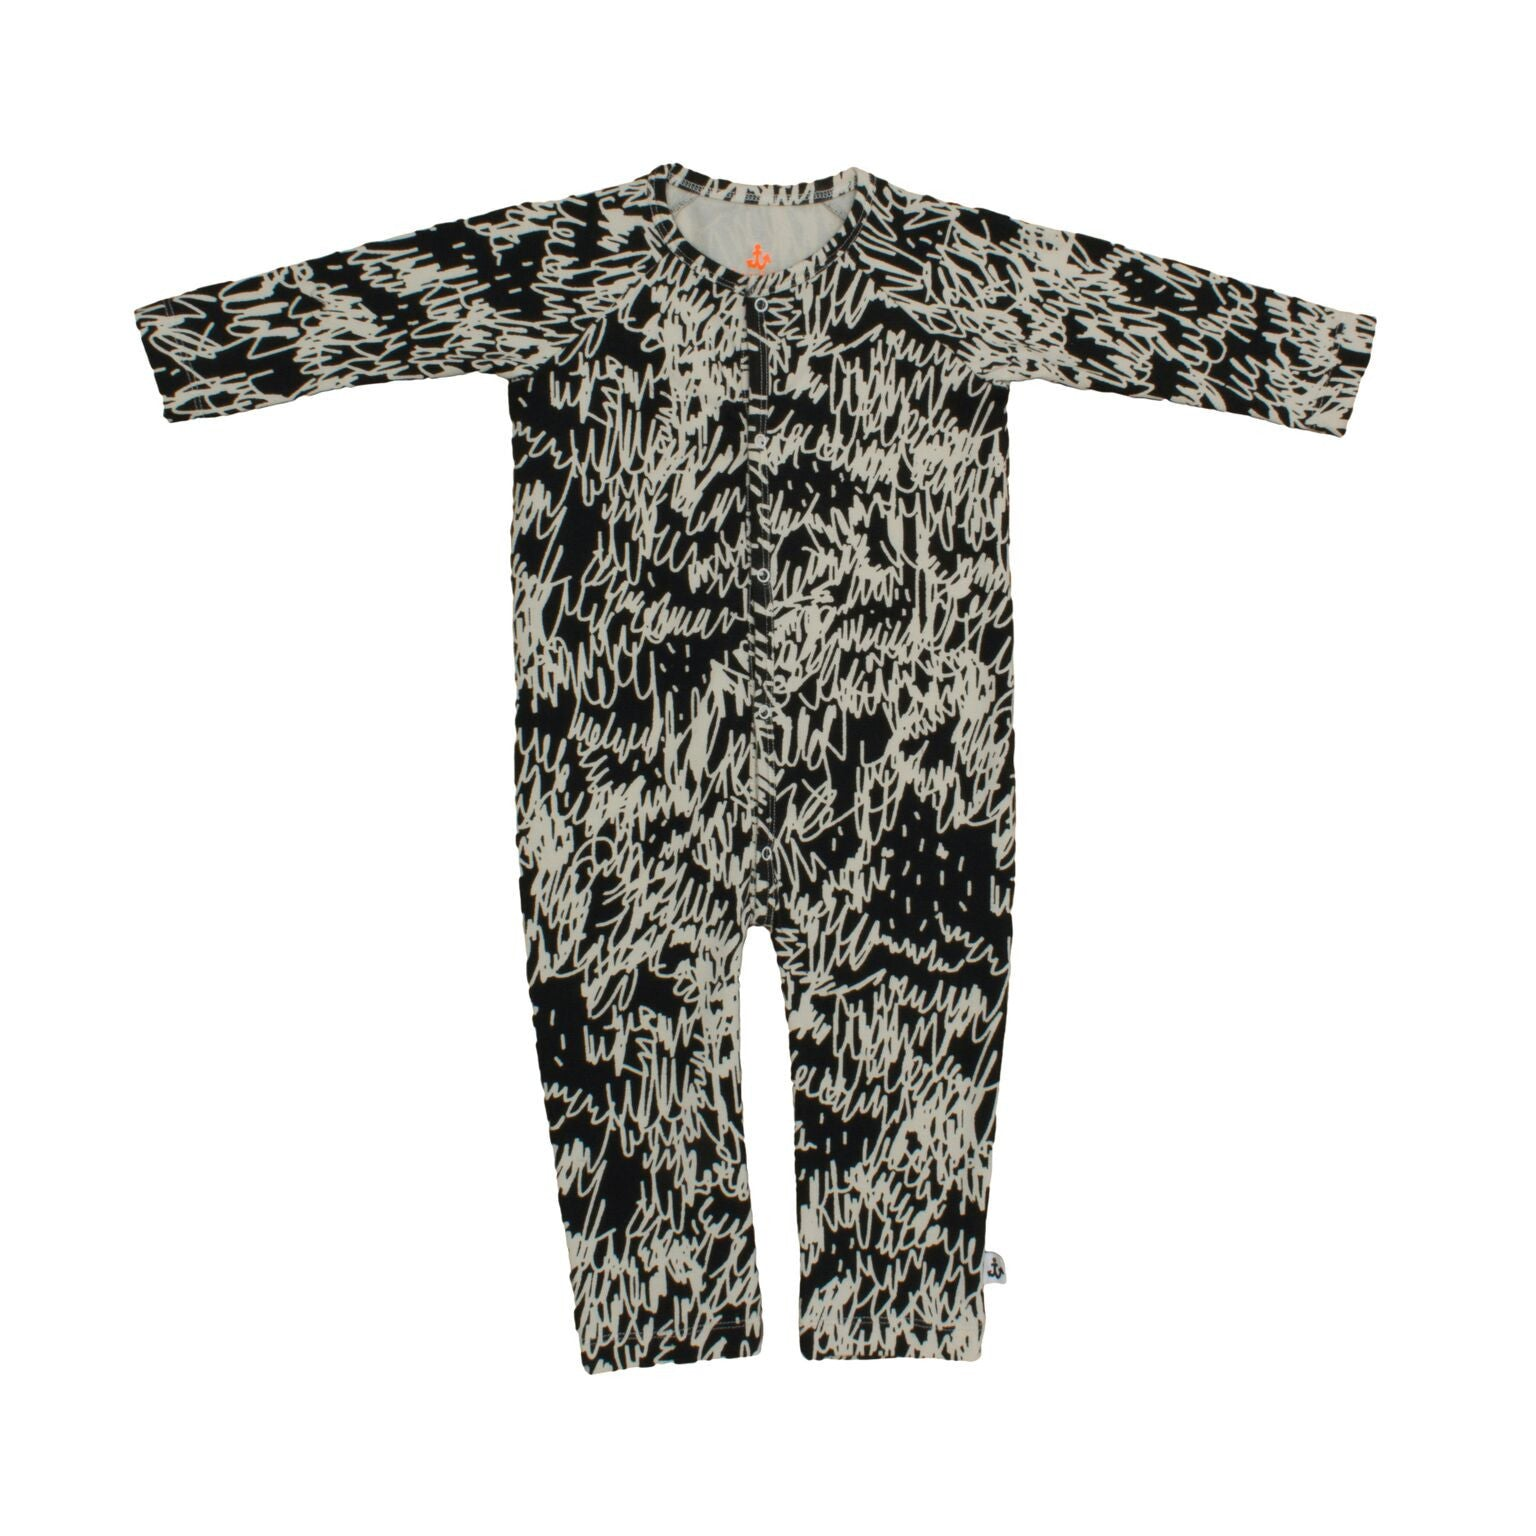 Noé & Zoë Black Scribble Playsuit